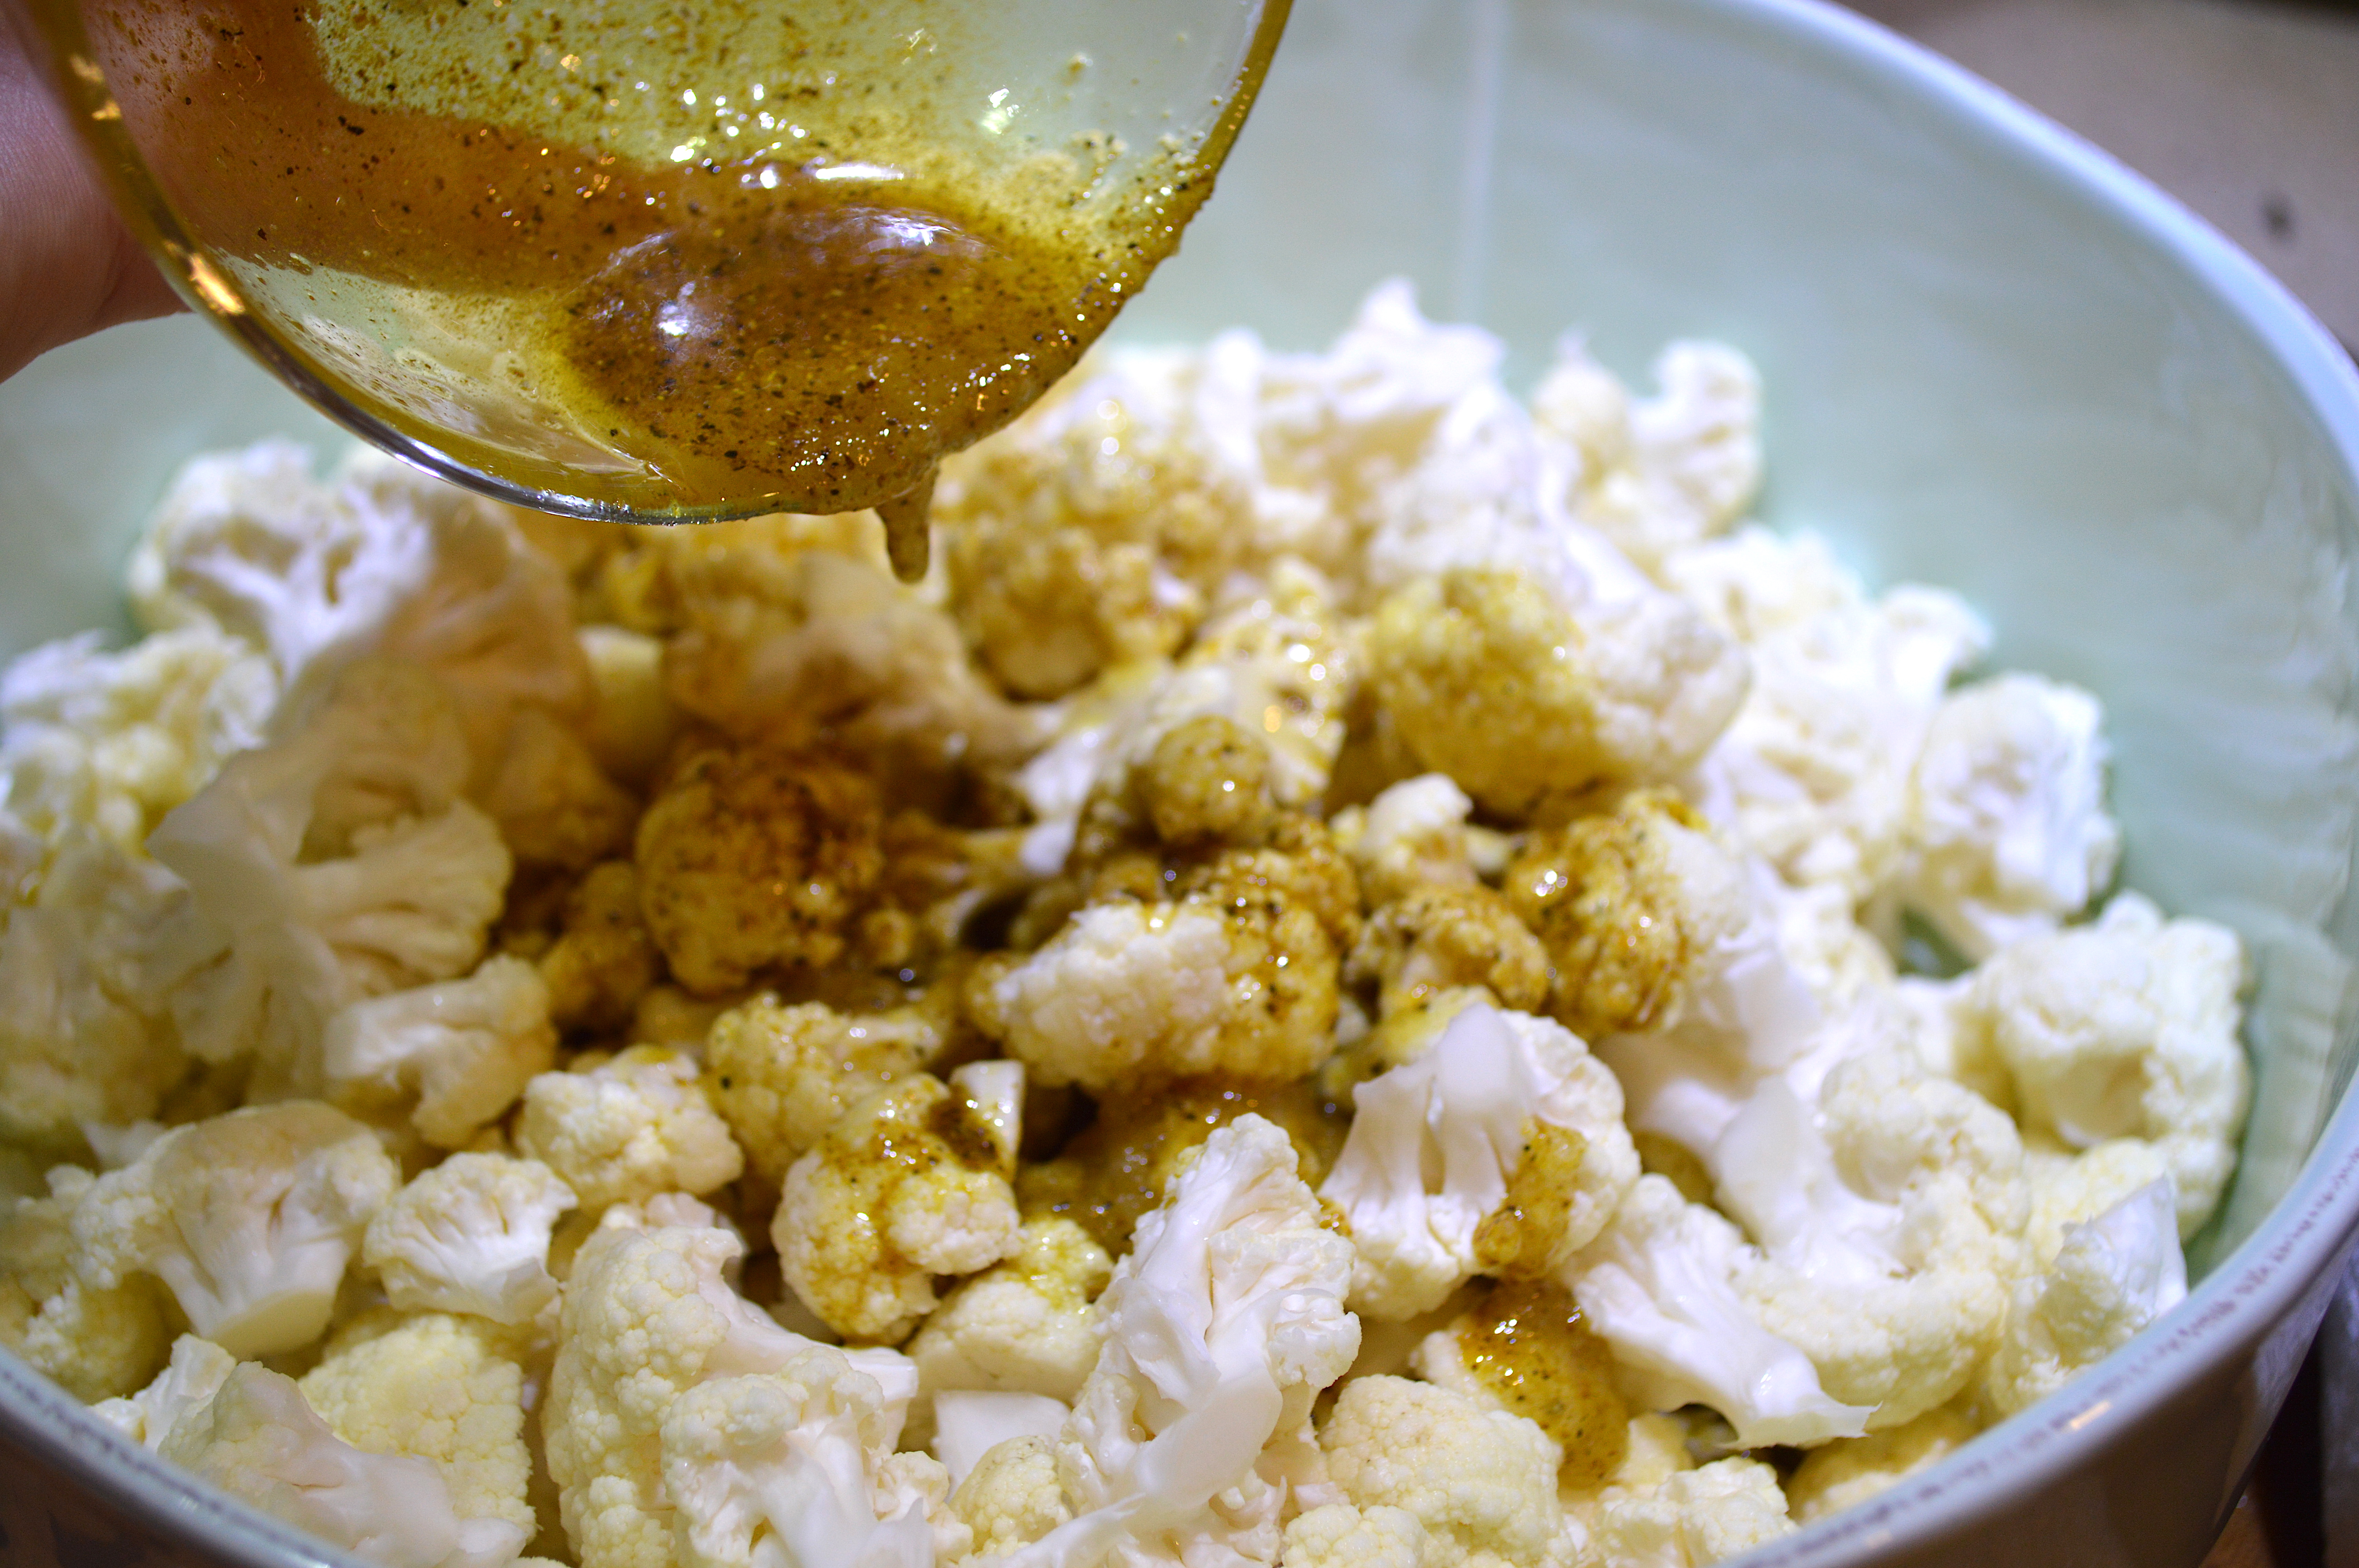 Pouring Curry Mixture onto Cauliflower